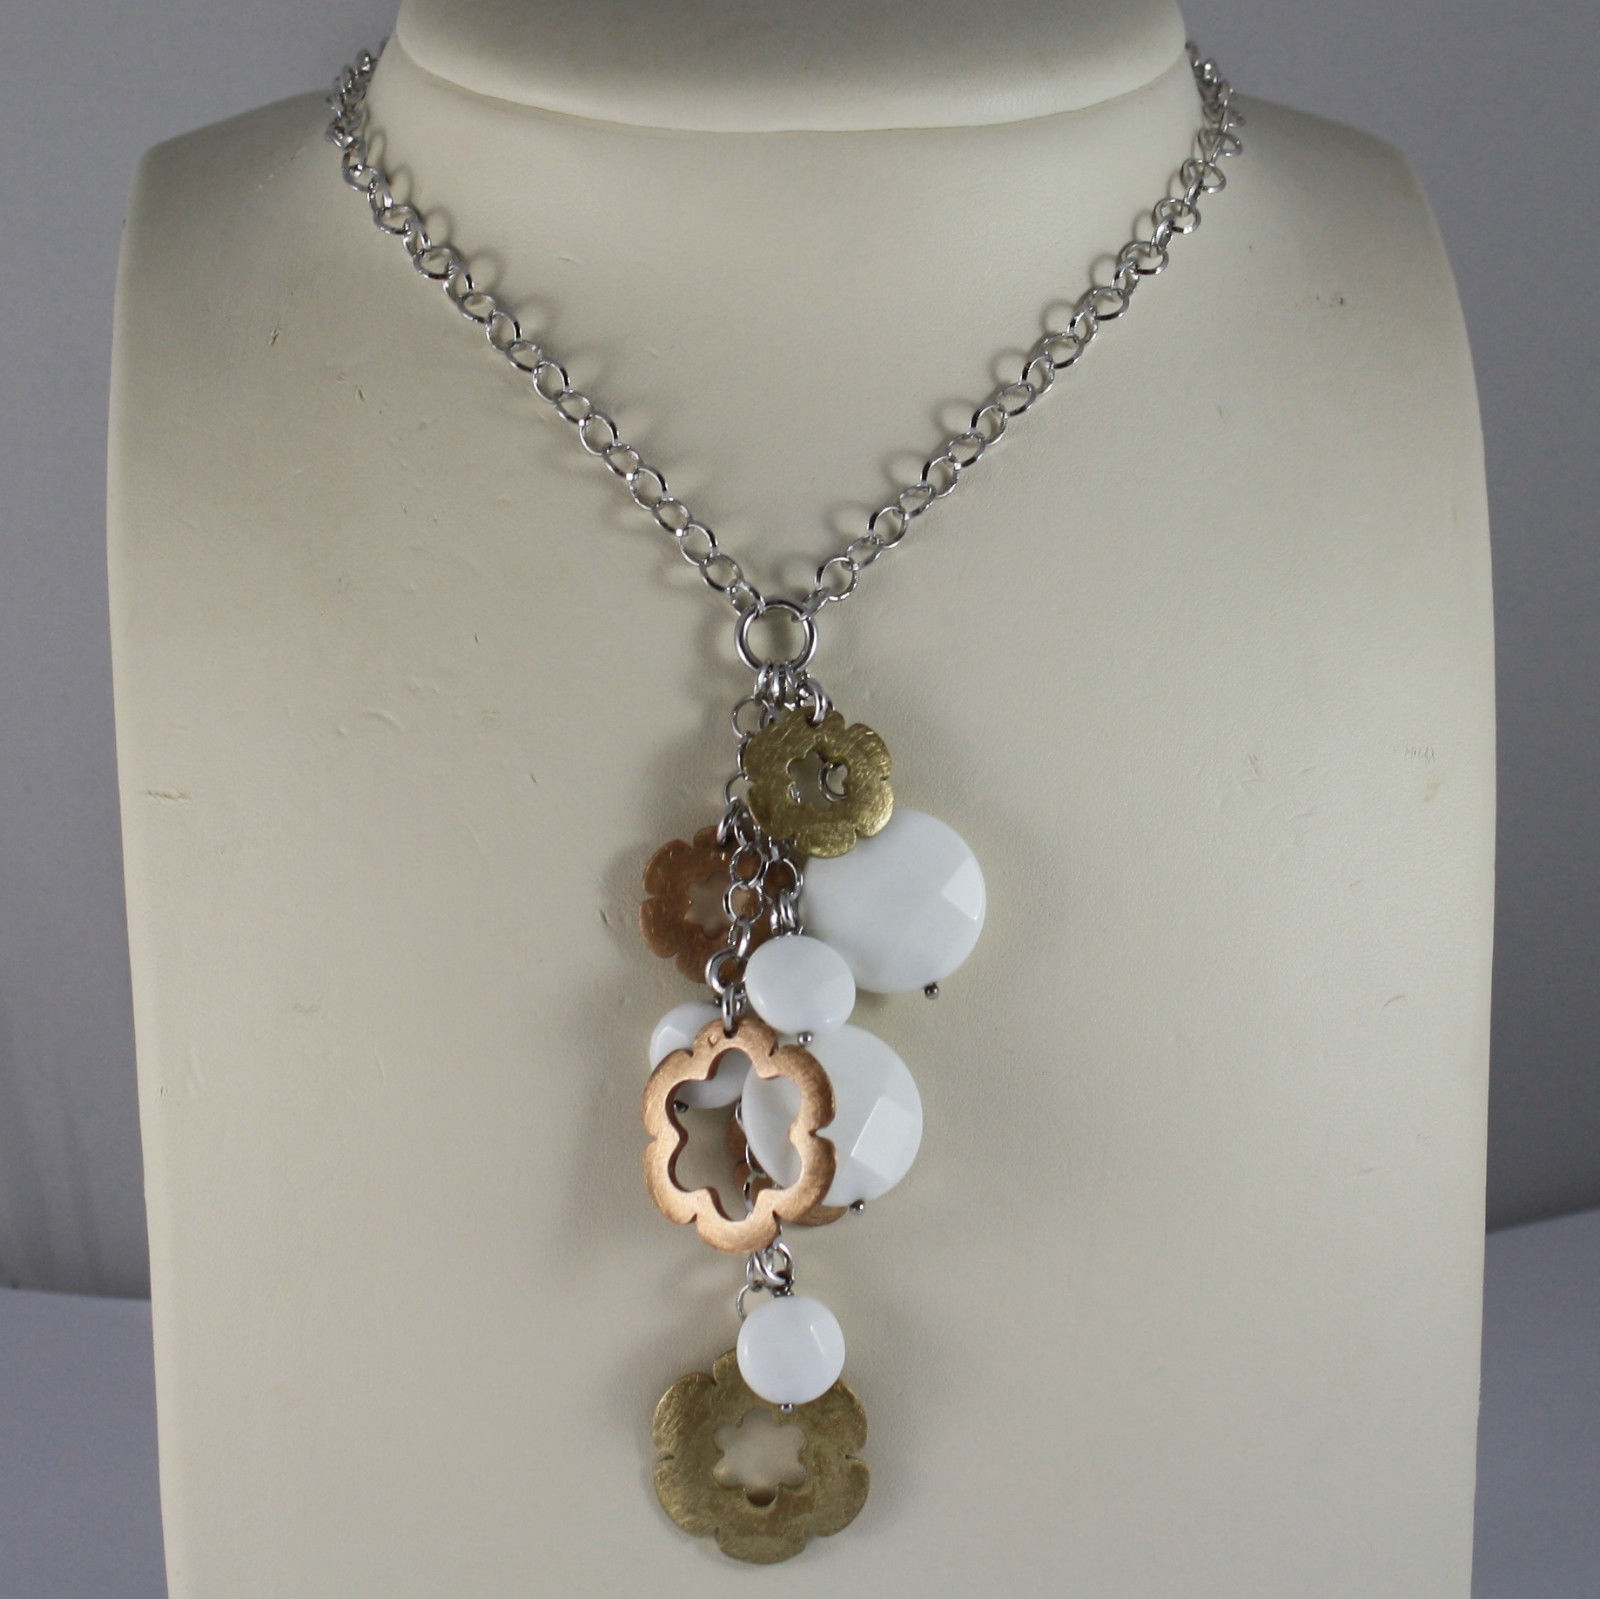 .925 RHODIUM SILVER NECKLACE WITH WHITE AGATE AND GOLDEN CHARMS